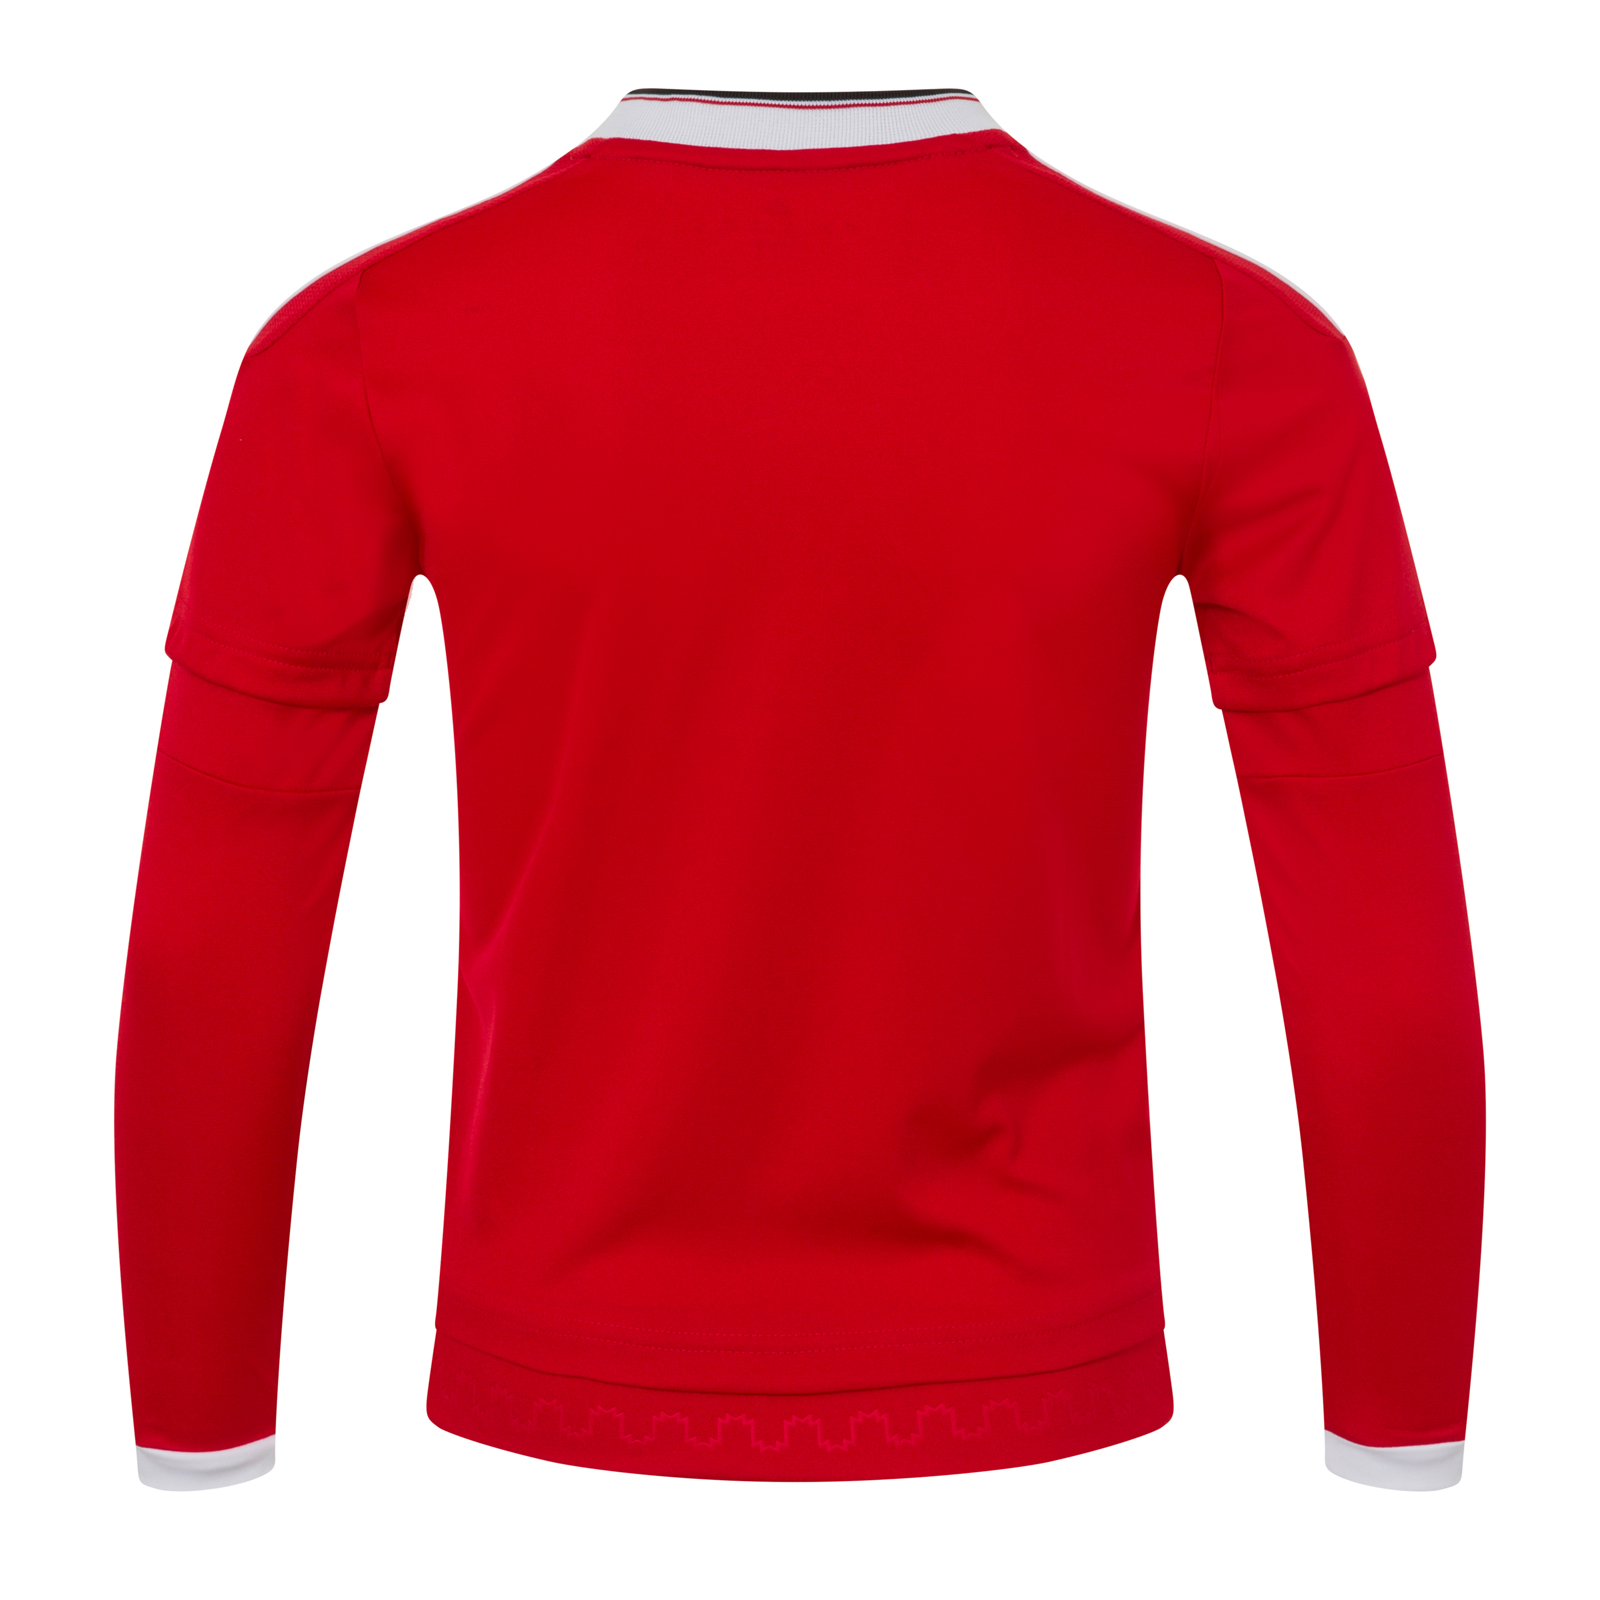 Manchester-United-FC-Official-Gift-Boys-Adidas-Home-Kit-Long-Sleeve-Shirt thumbnail 7